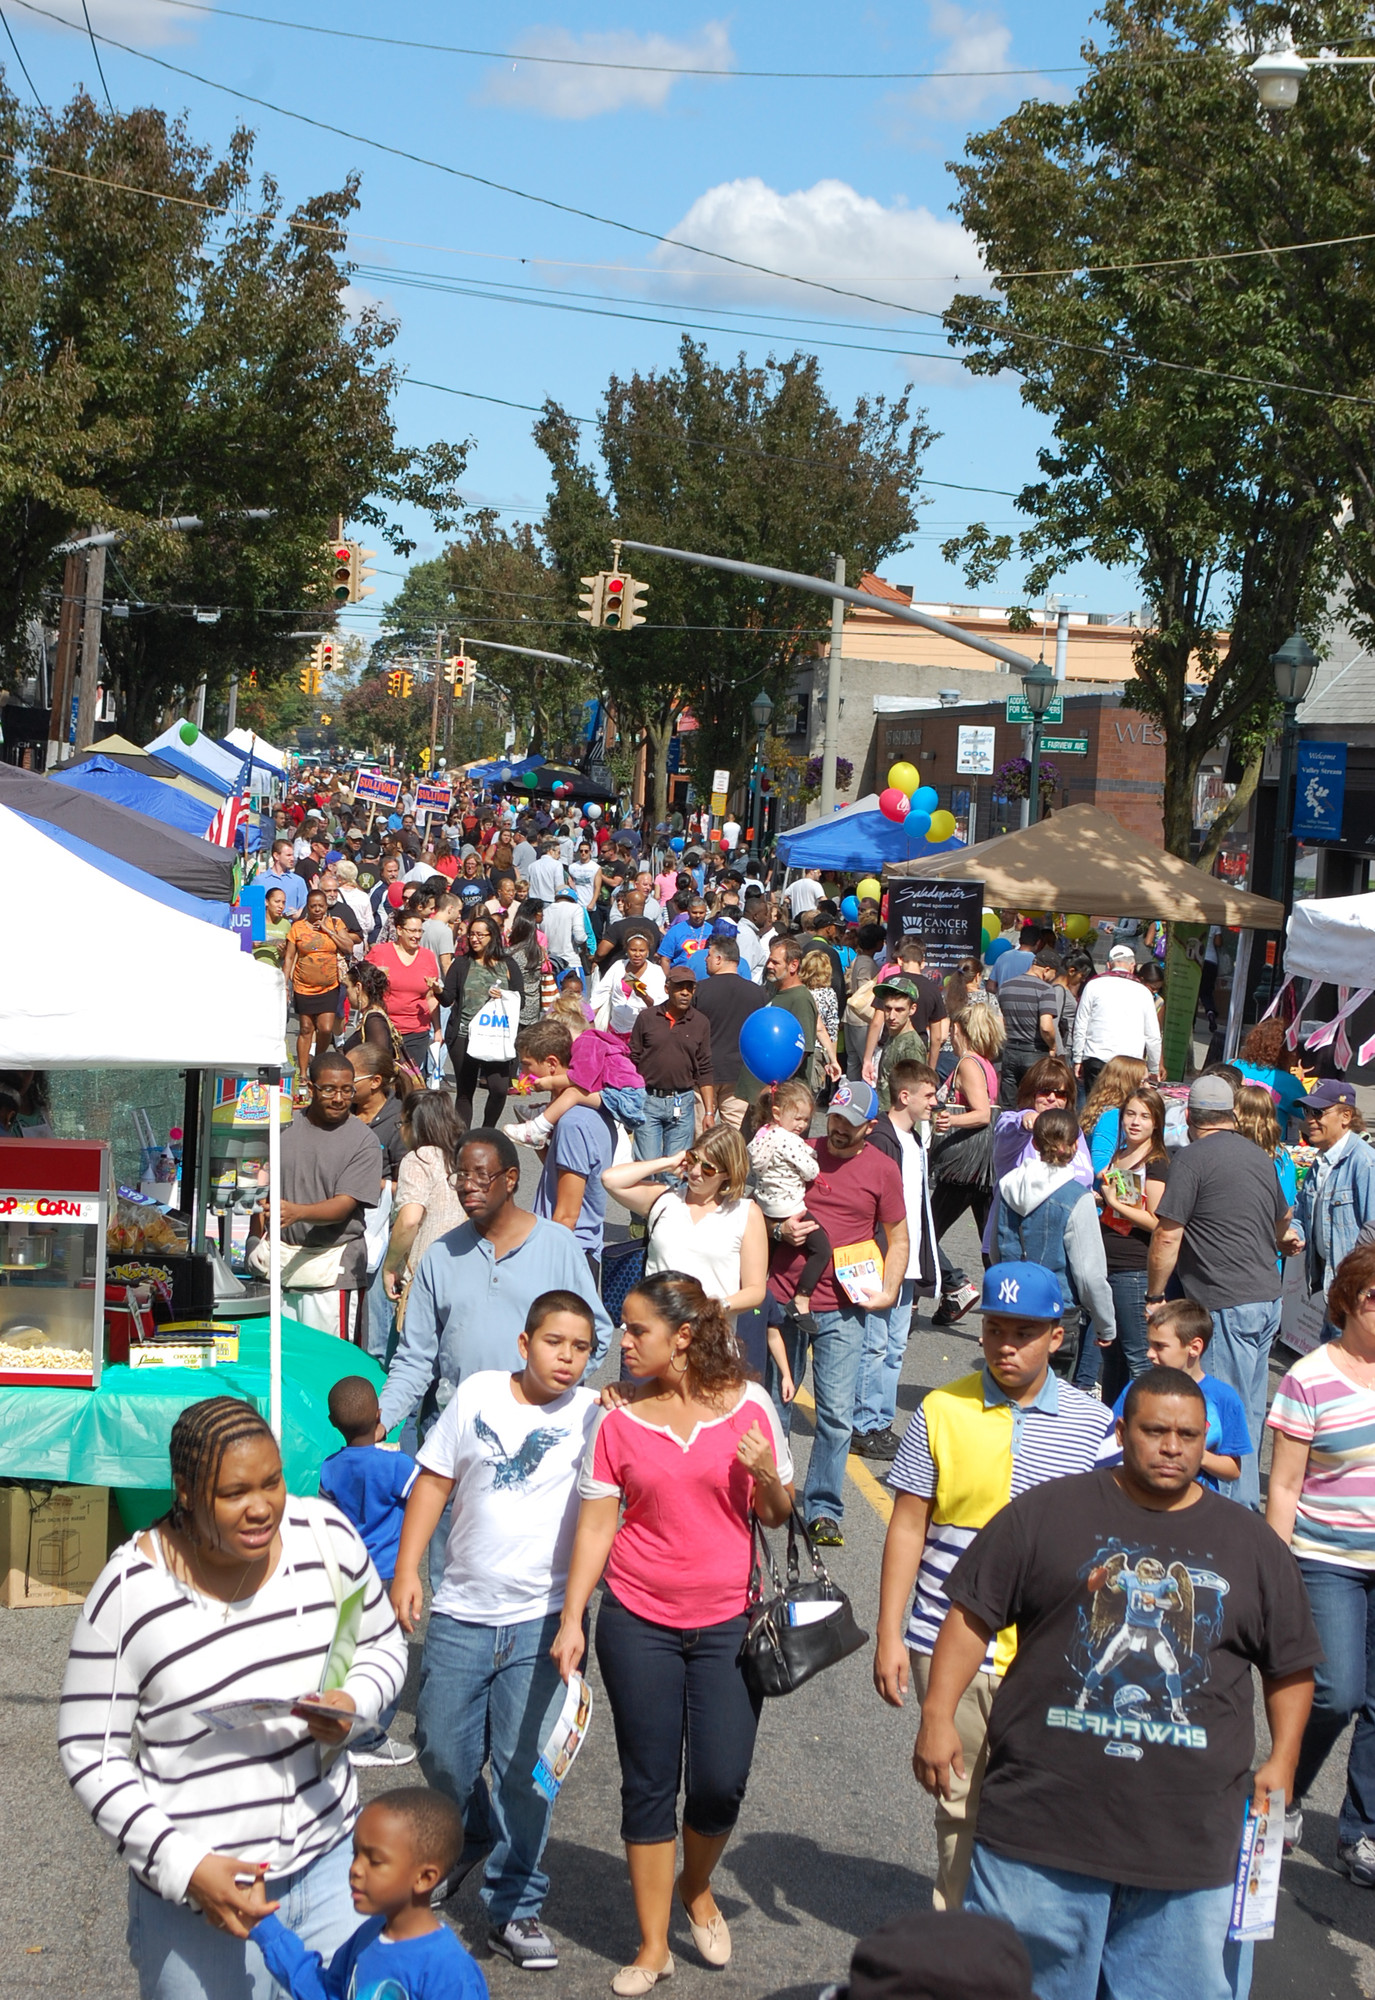 By midday on Saturday, Rockaway Avenue was lined from end to end with residents attending the second annual Valley Stream Community Fest.